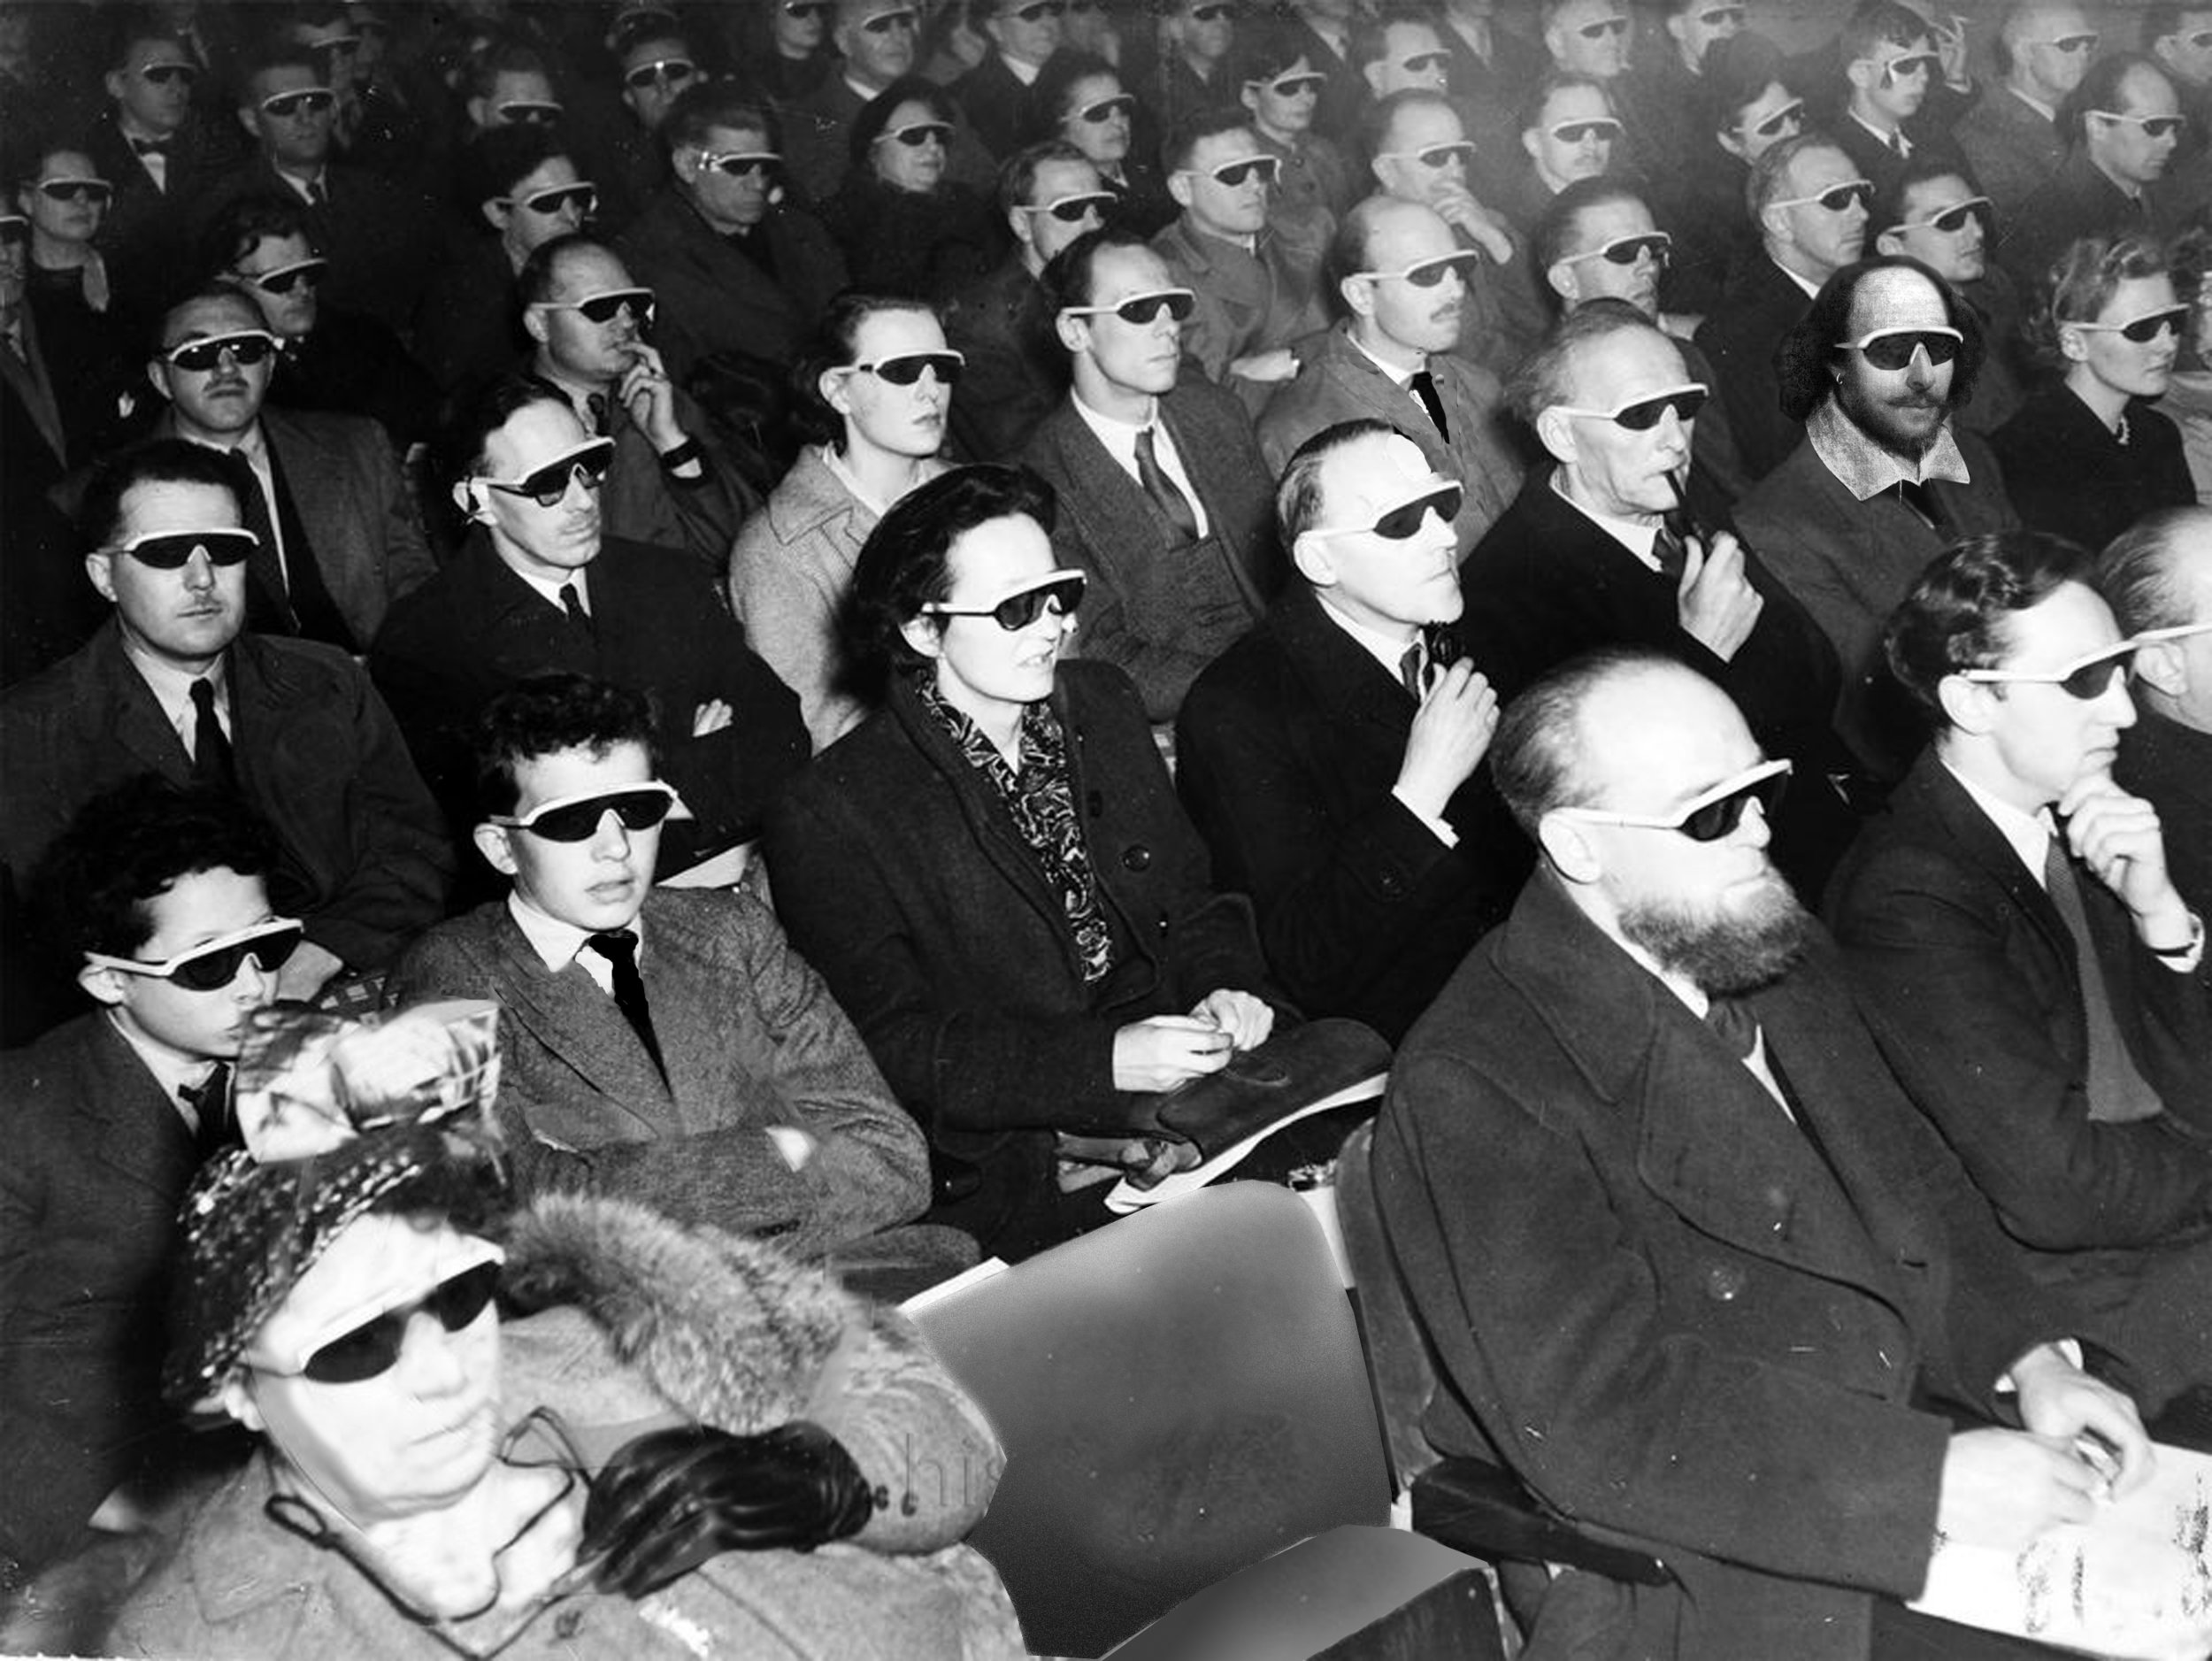 Shakespeare in a movie theater in New York which must have been around 1950. He is sitting in the second row next to Marcel Duchamp.